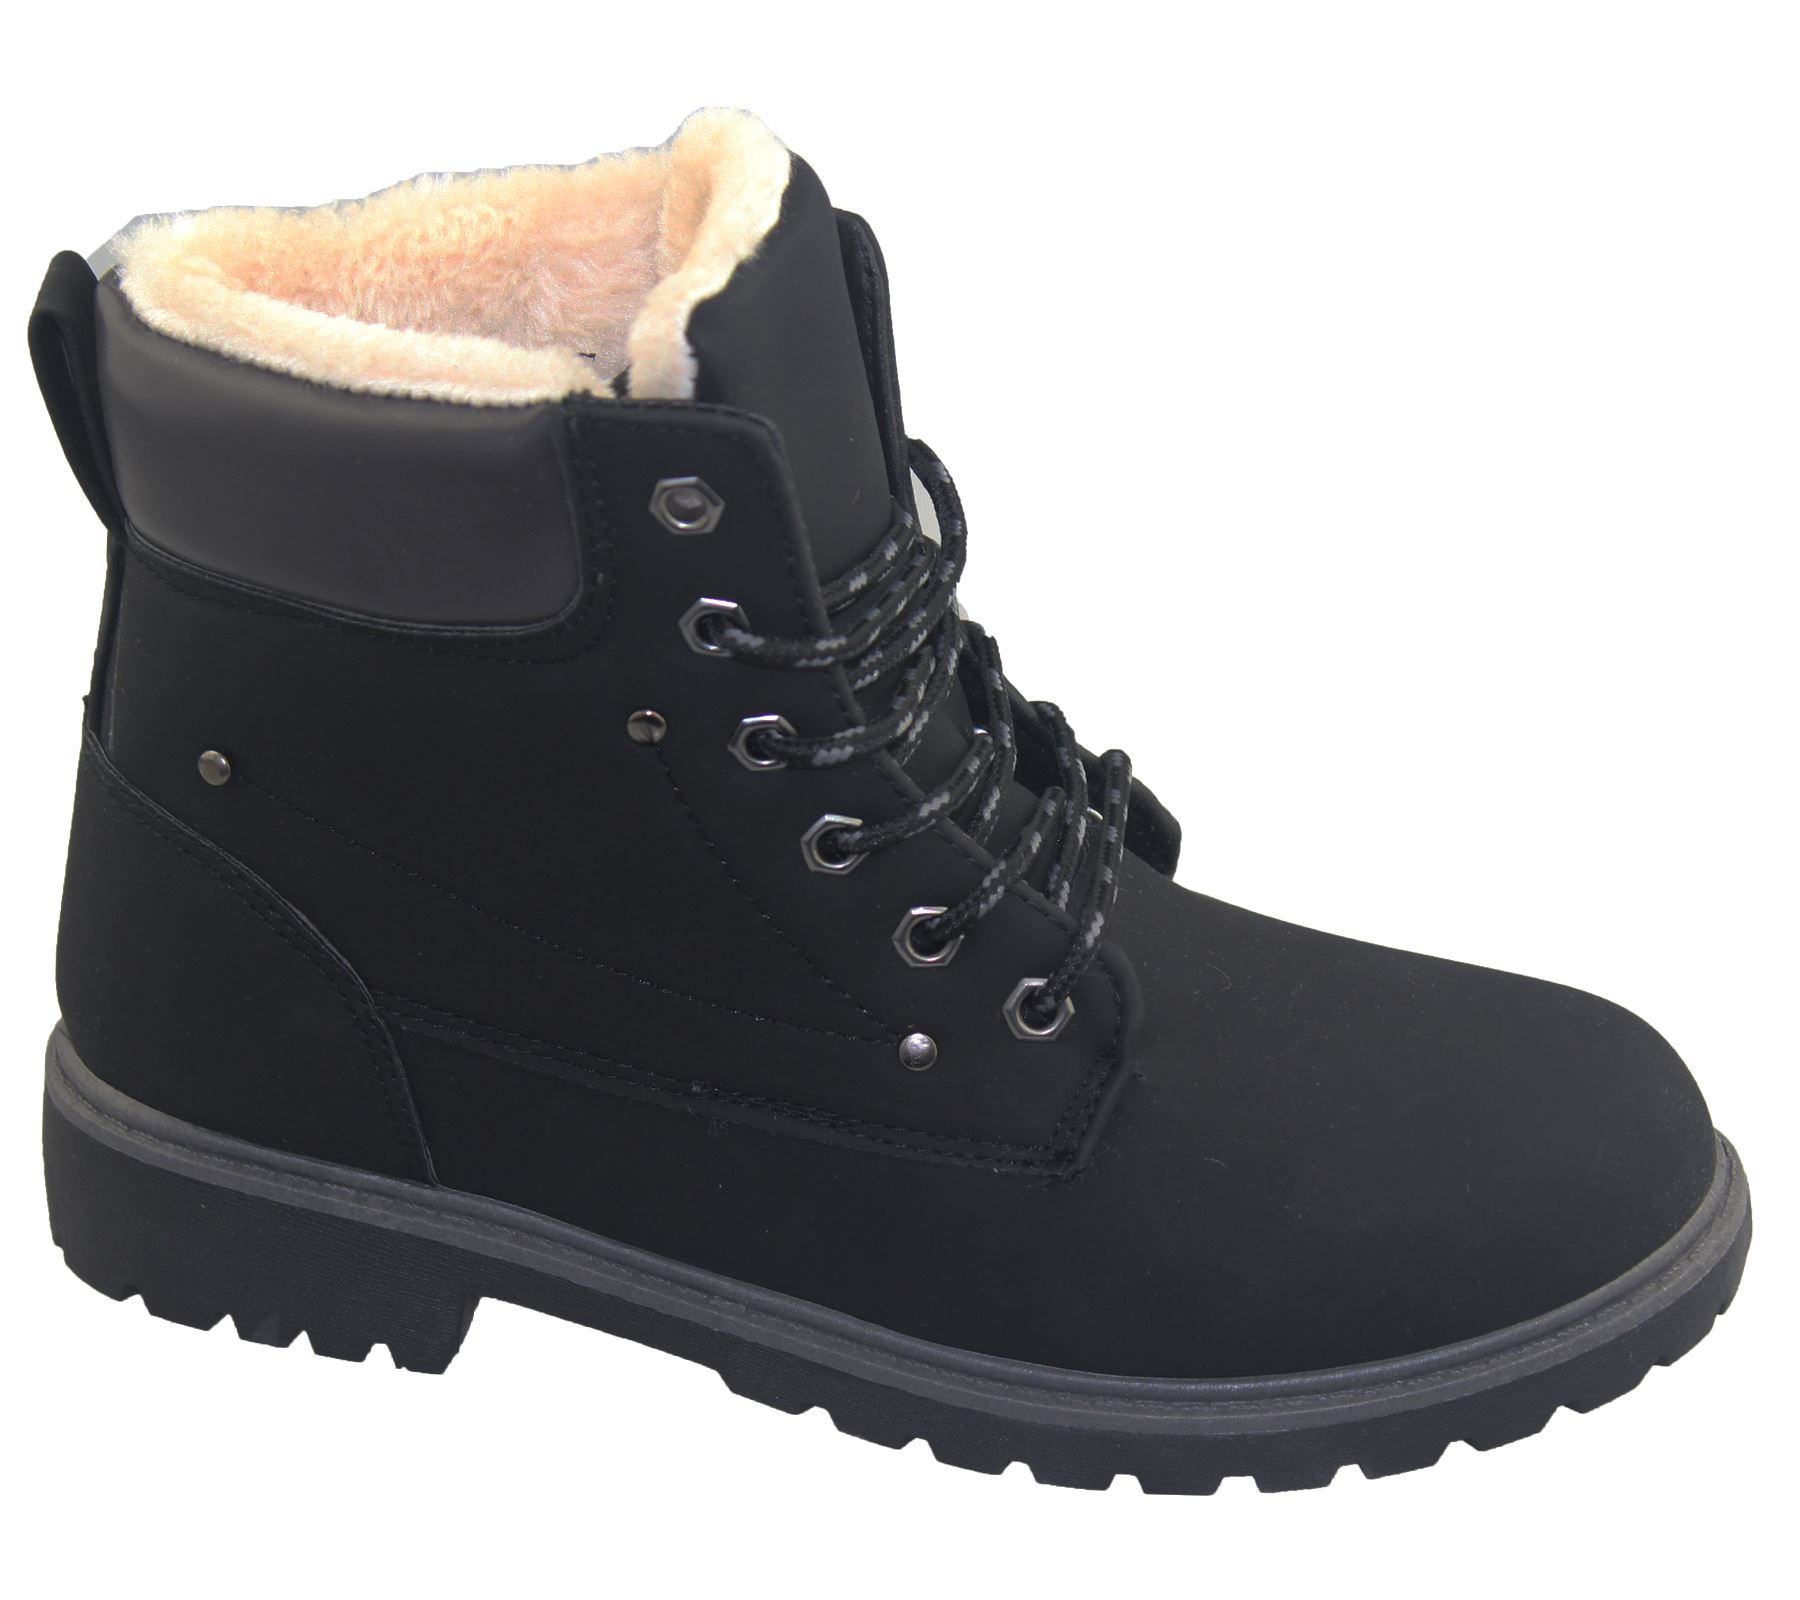 Womens Warm Ankle Boots Combat Hiking Work High Top Desert ...